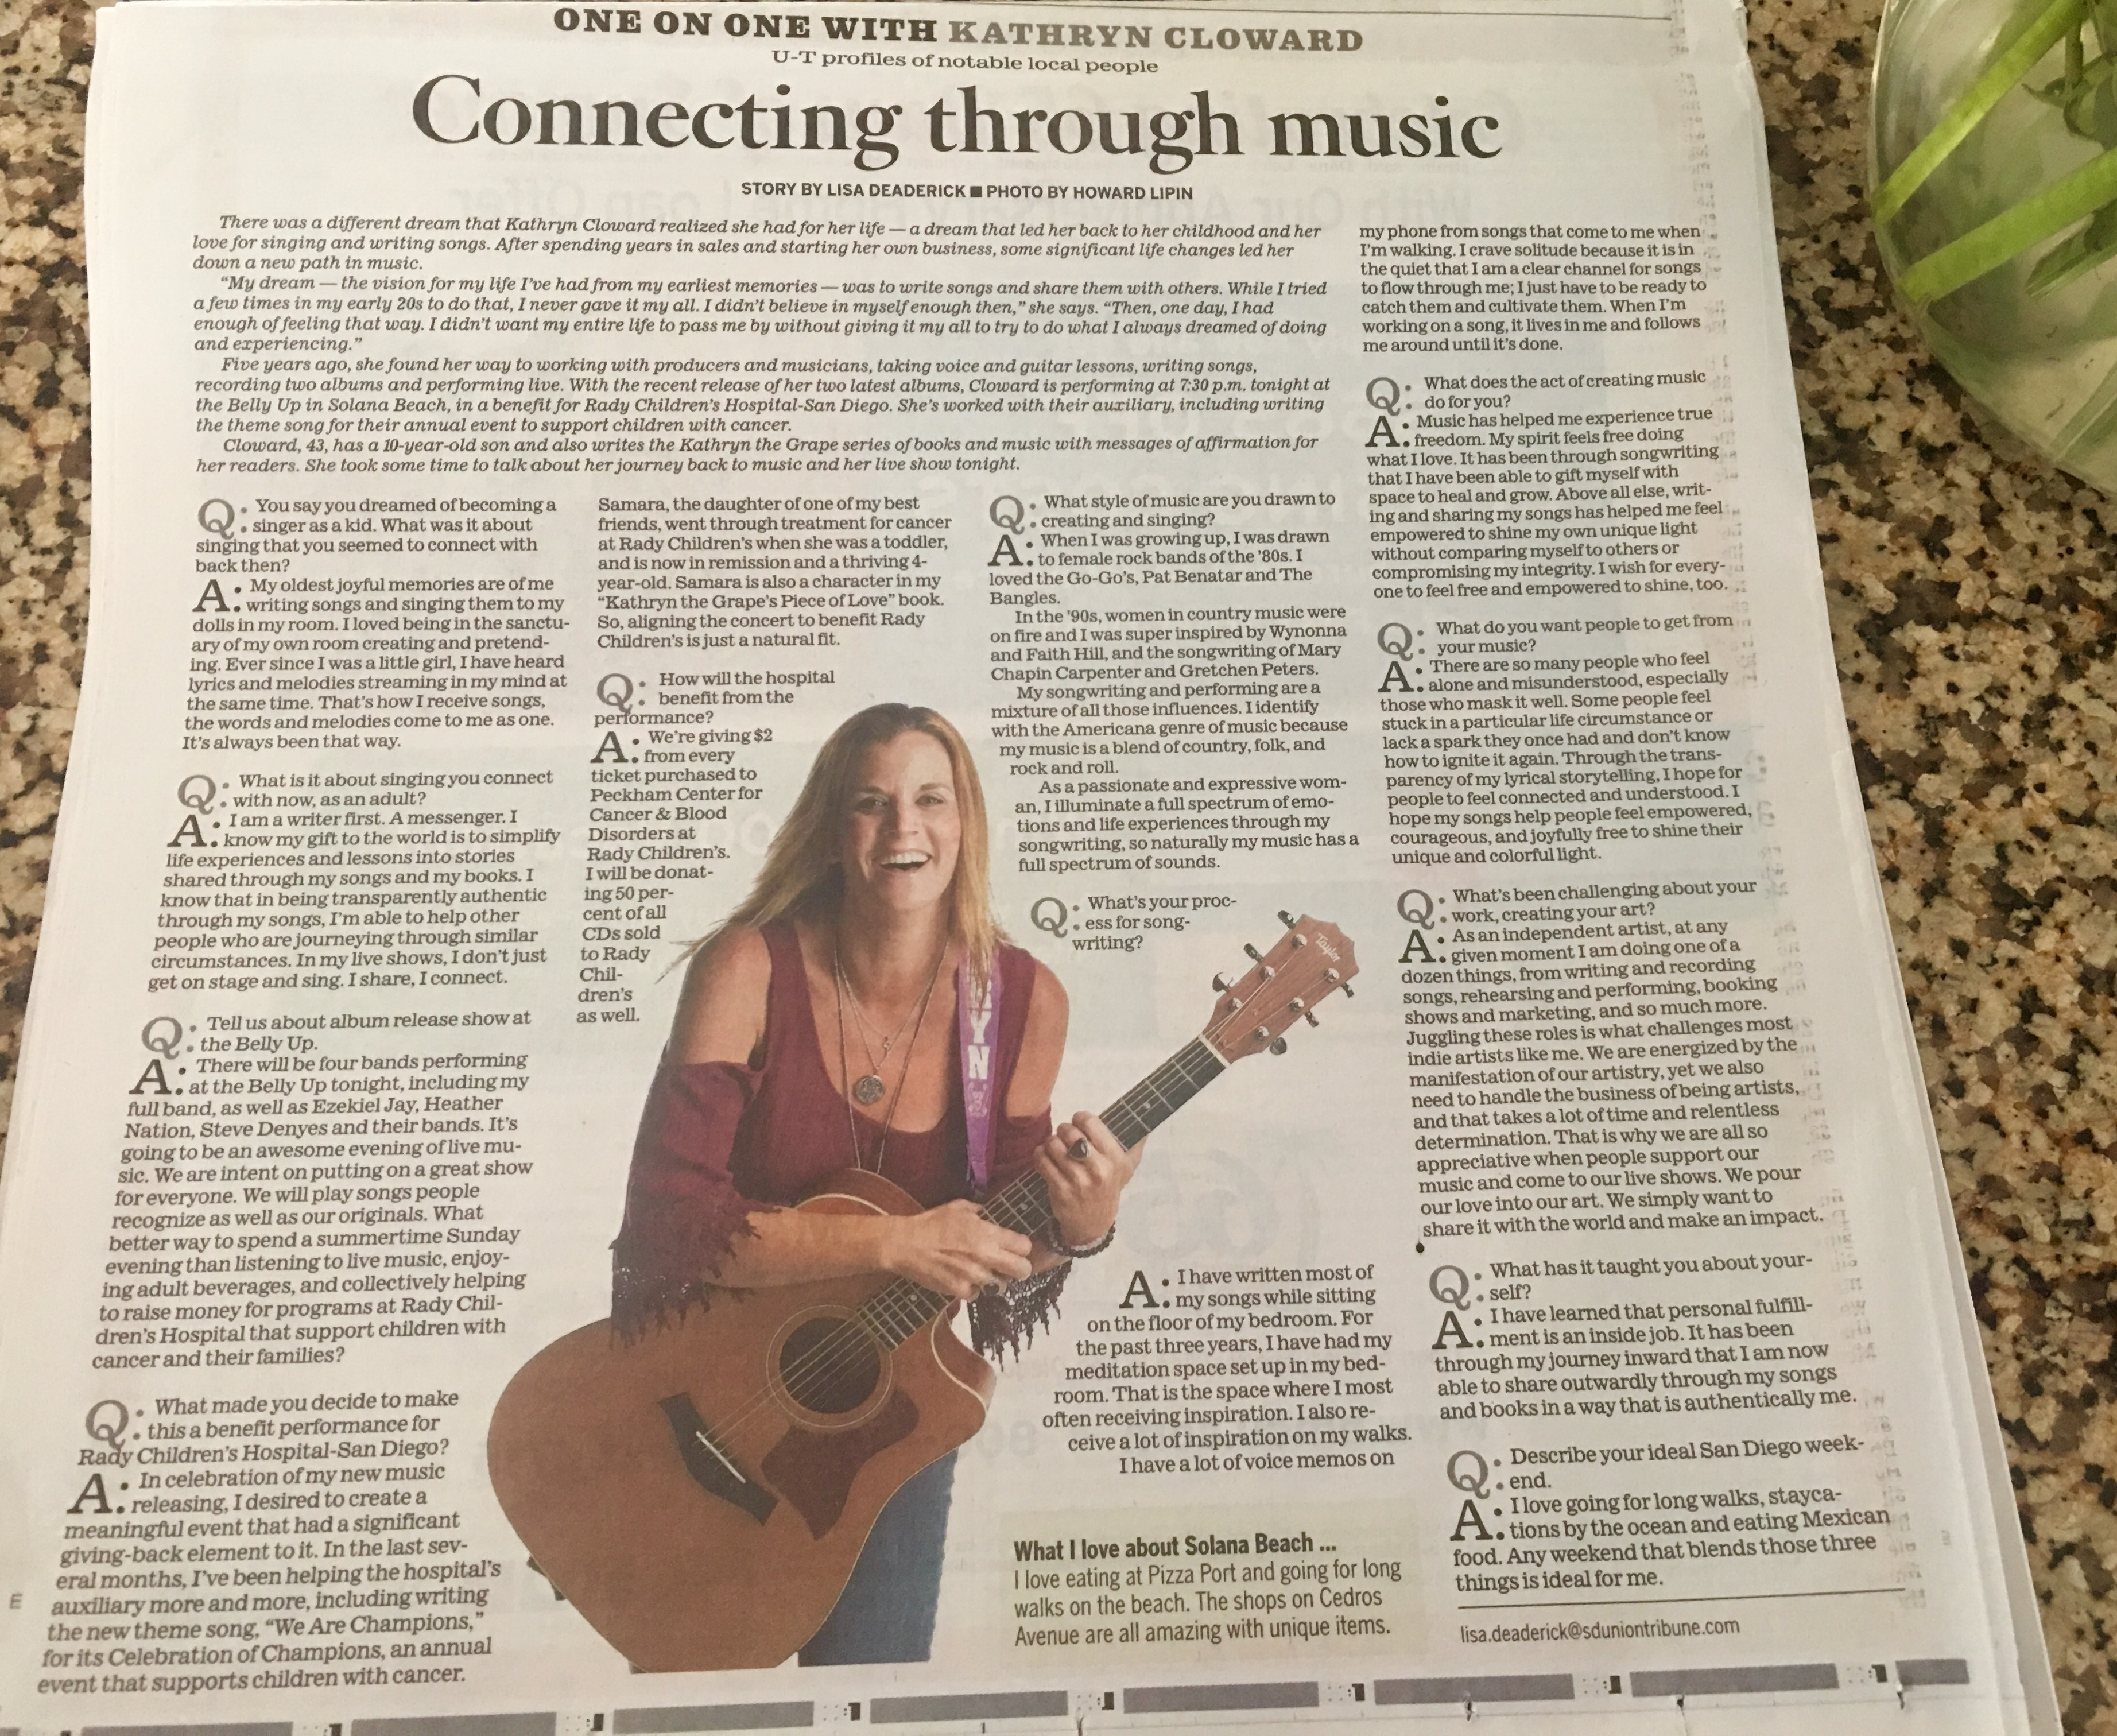 Kathryn Cloward Featured in the San Diego Union Tribune Belly Up Benefit Show for Rady Children's Hospital